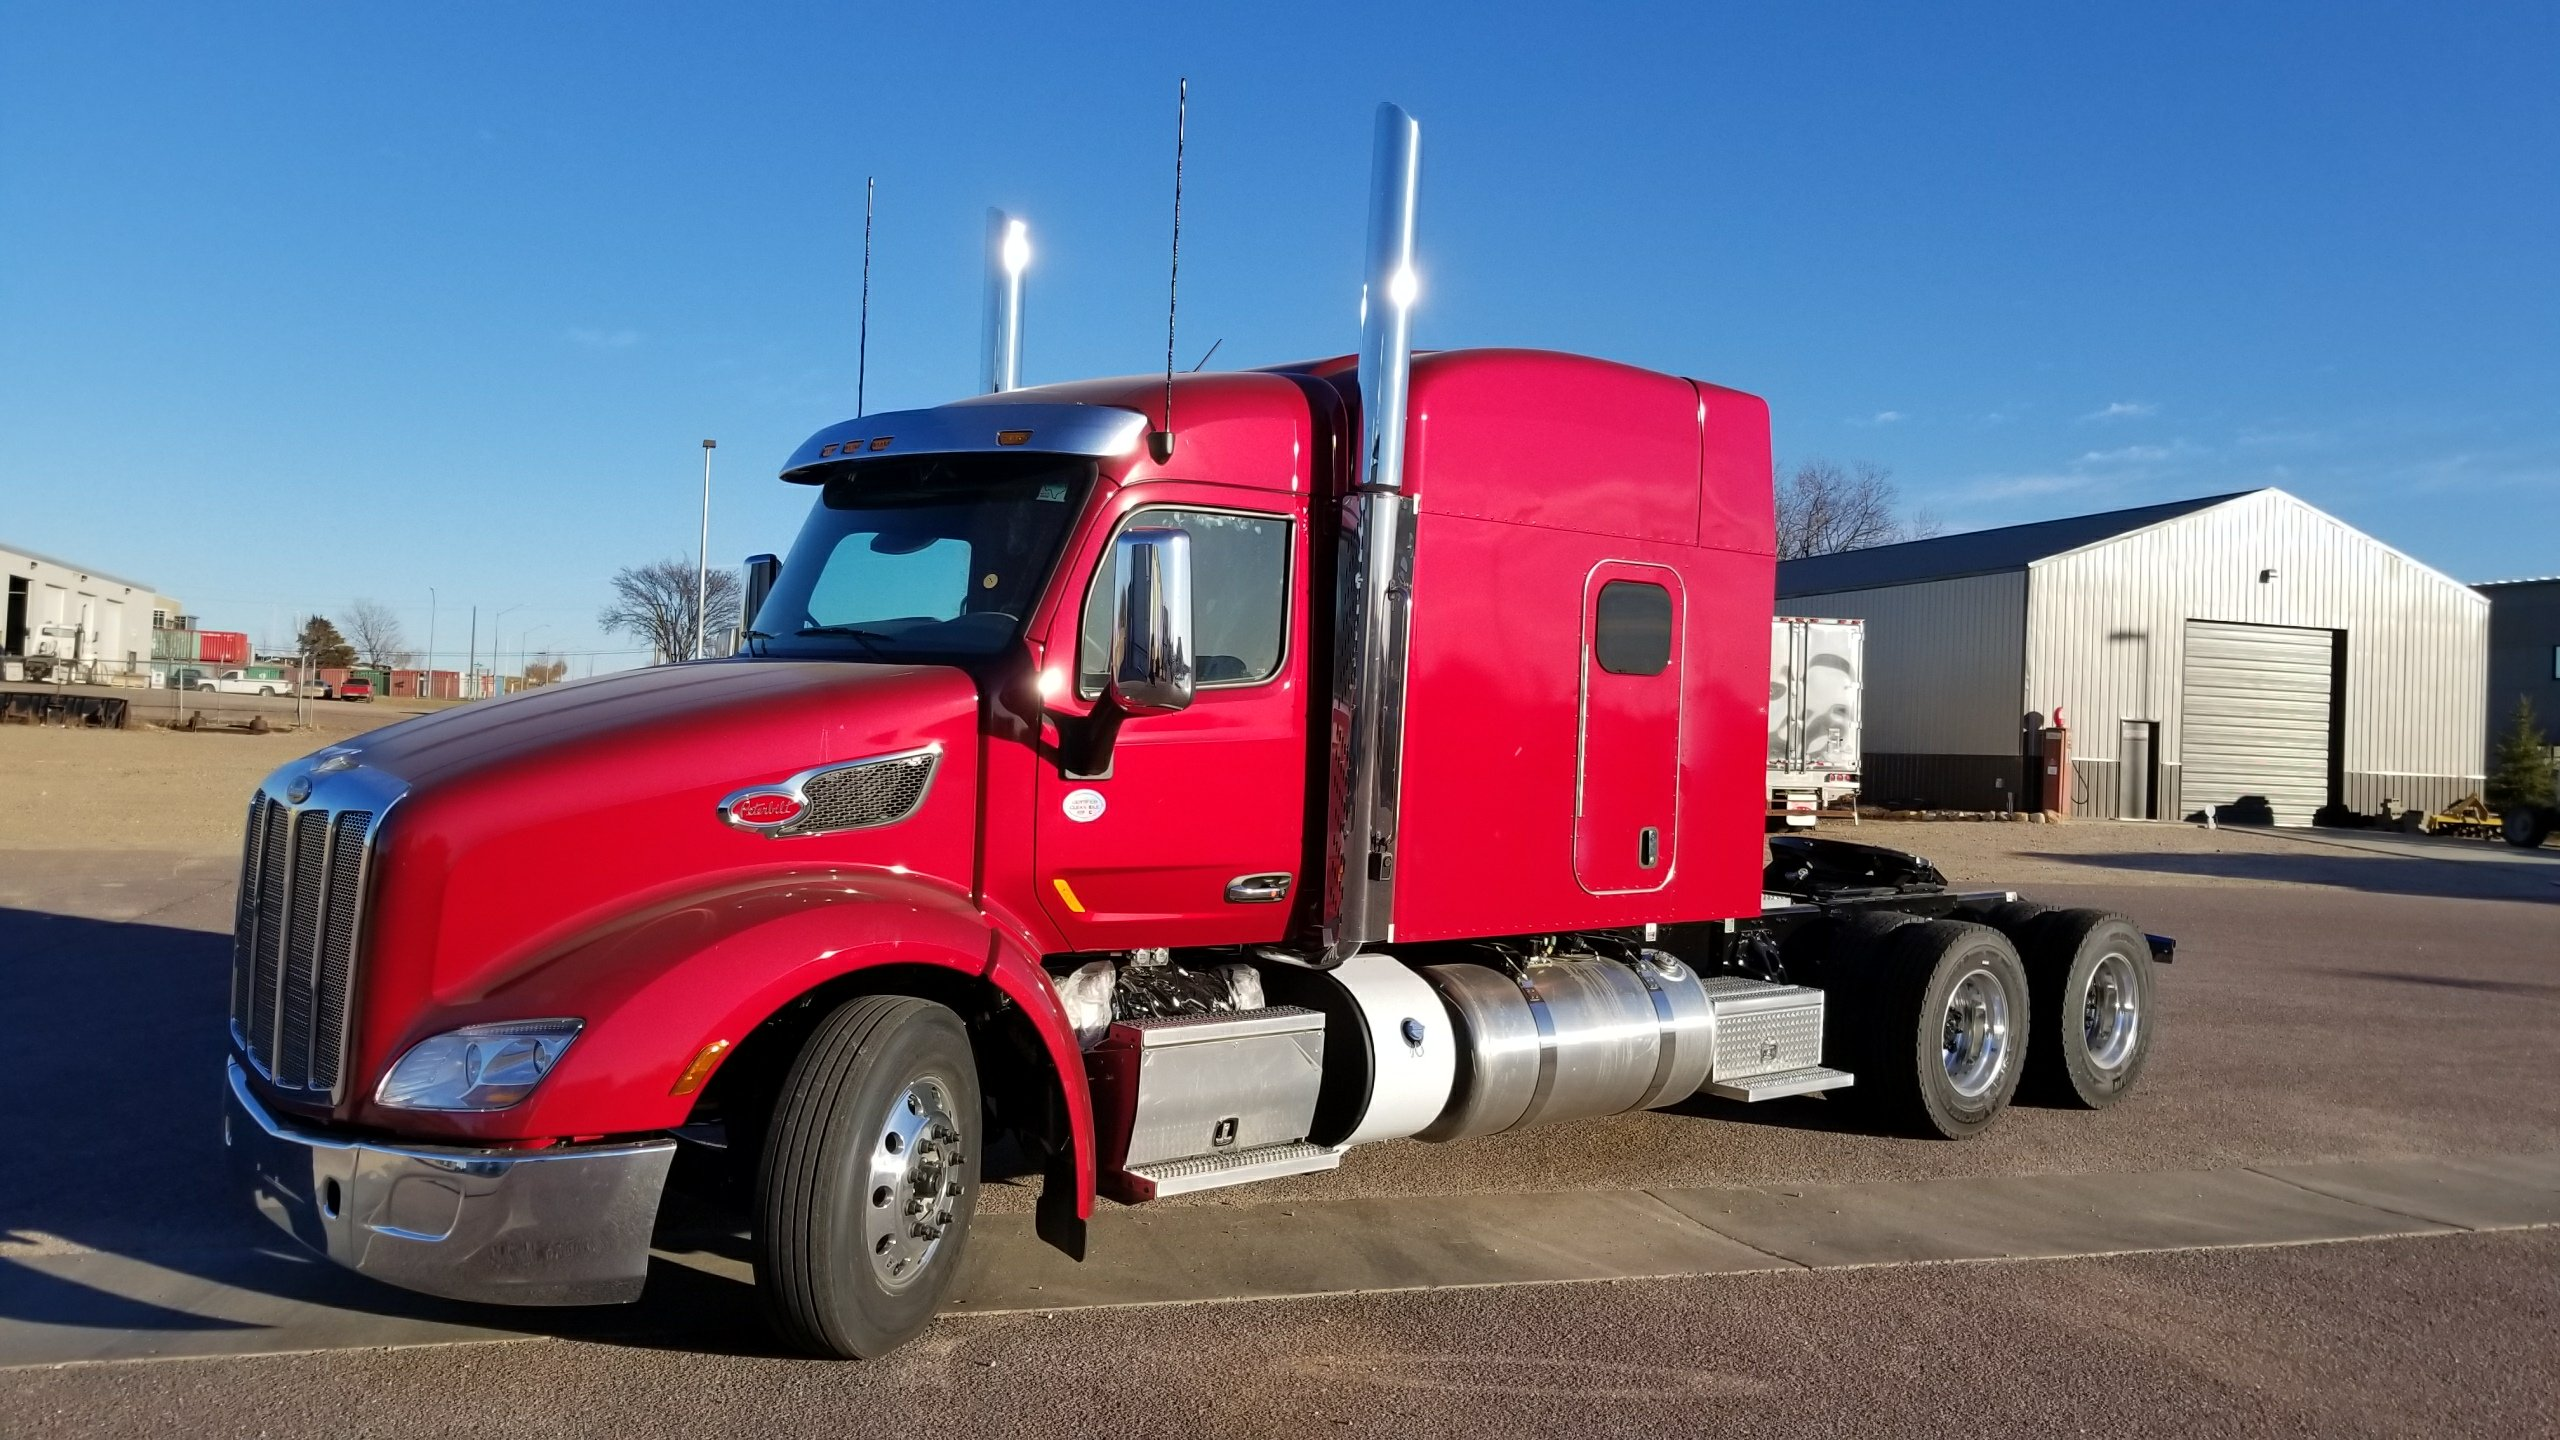 Wallpaper Stores In Sioux Falls Sd Diamond Red 2018 579 Just In Peterbilt Of Sioux Falls